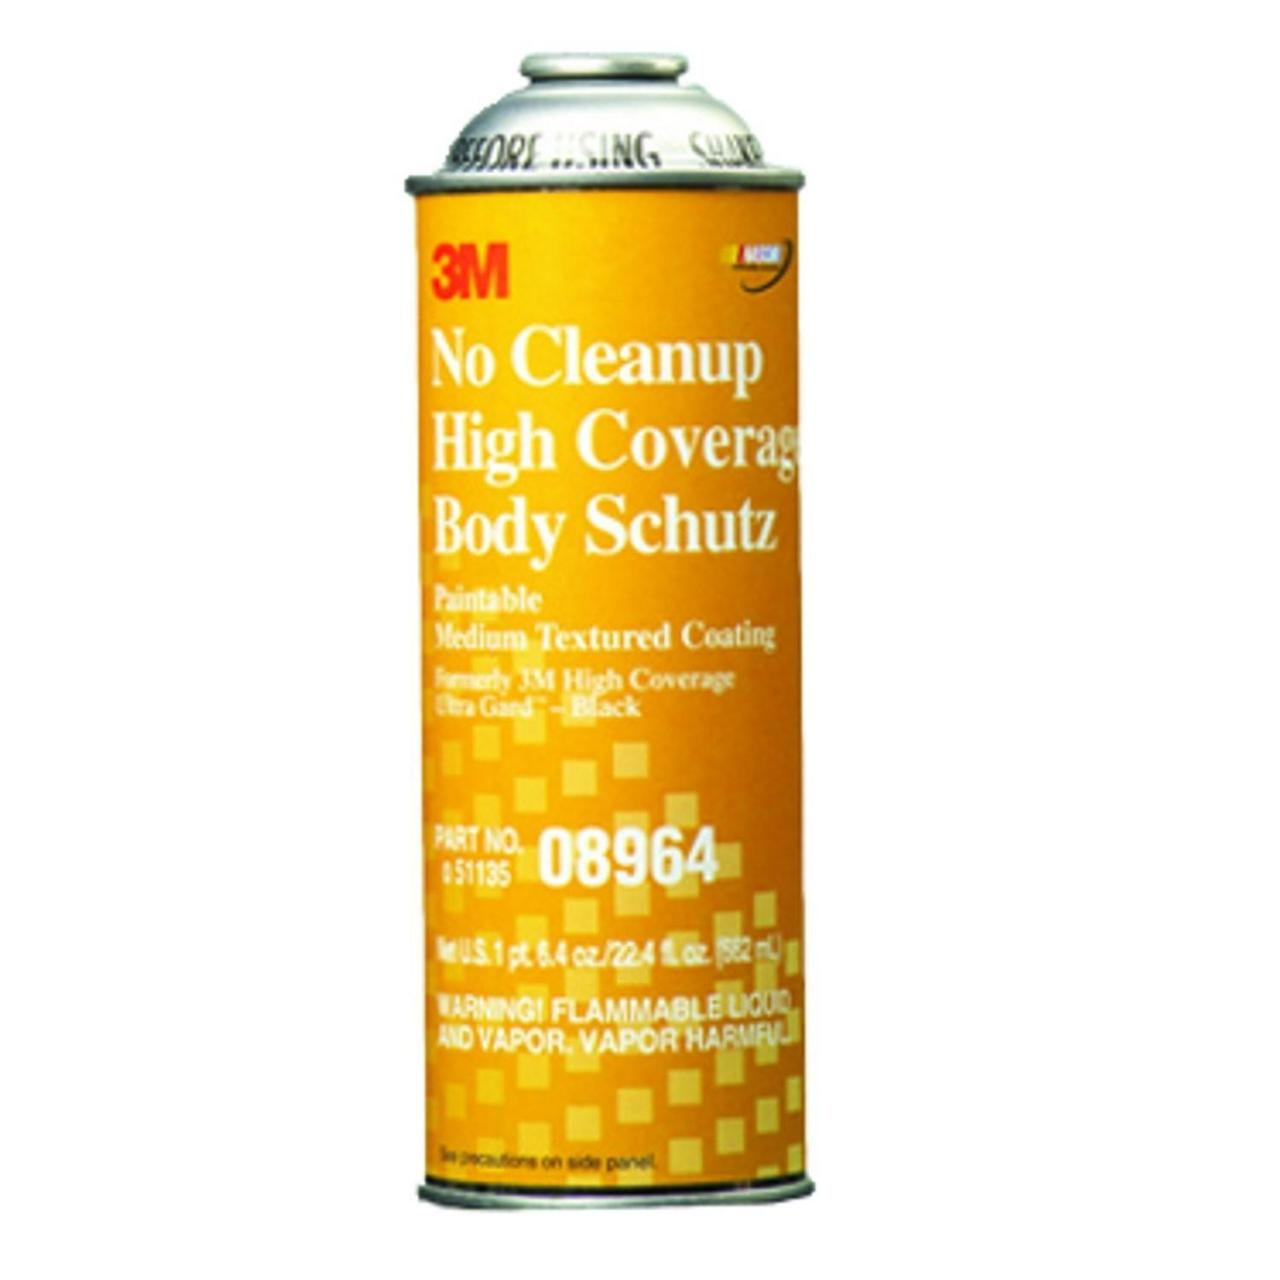 Buy cheap Body Schutz No Cleanup High Coverage Coating, 1 Pint, 08964 from wholesalers